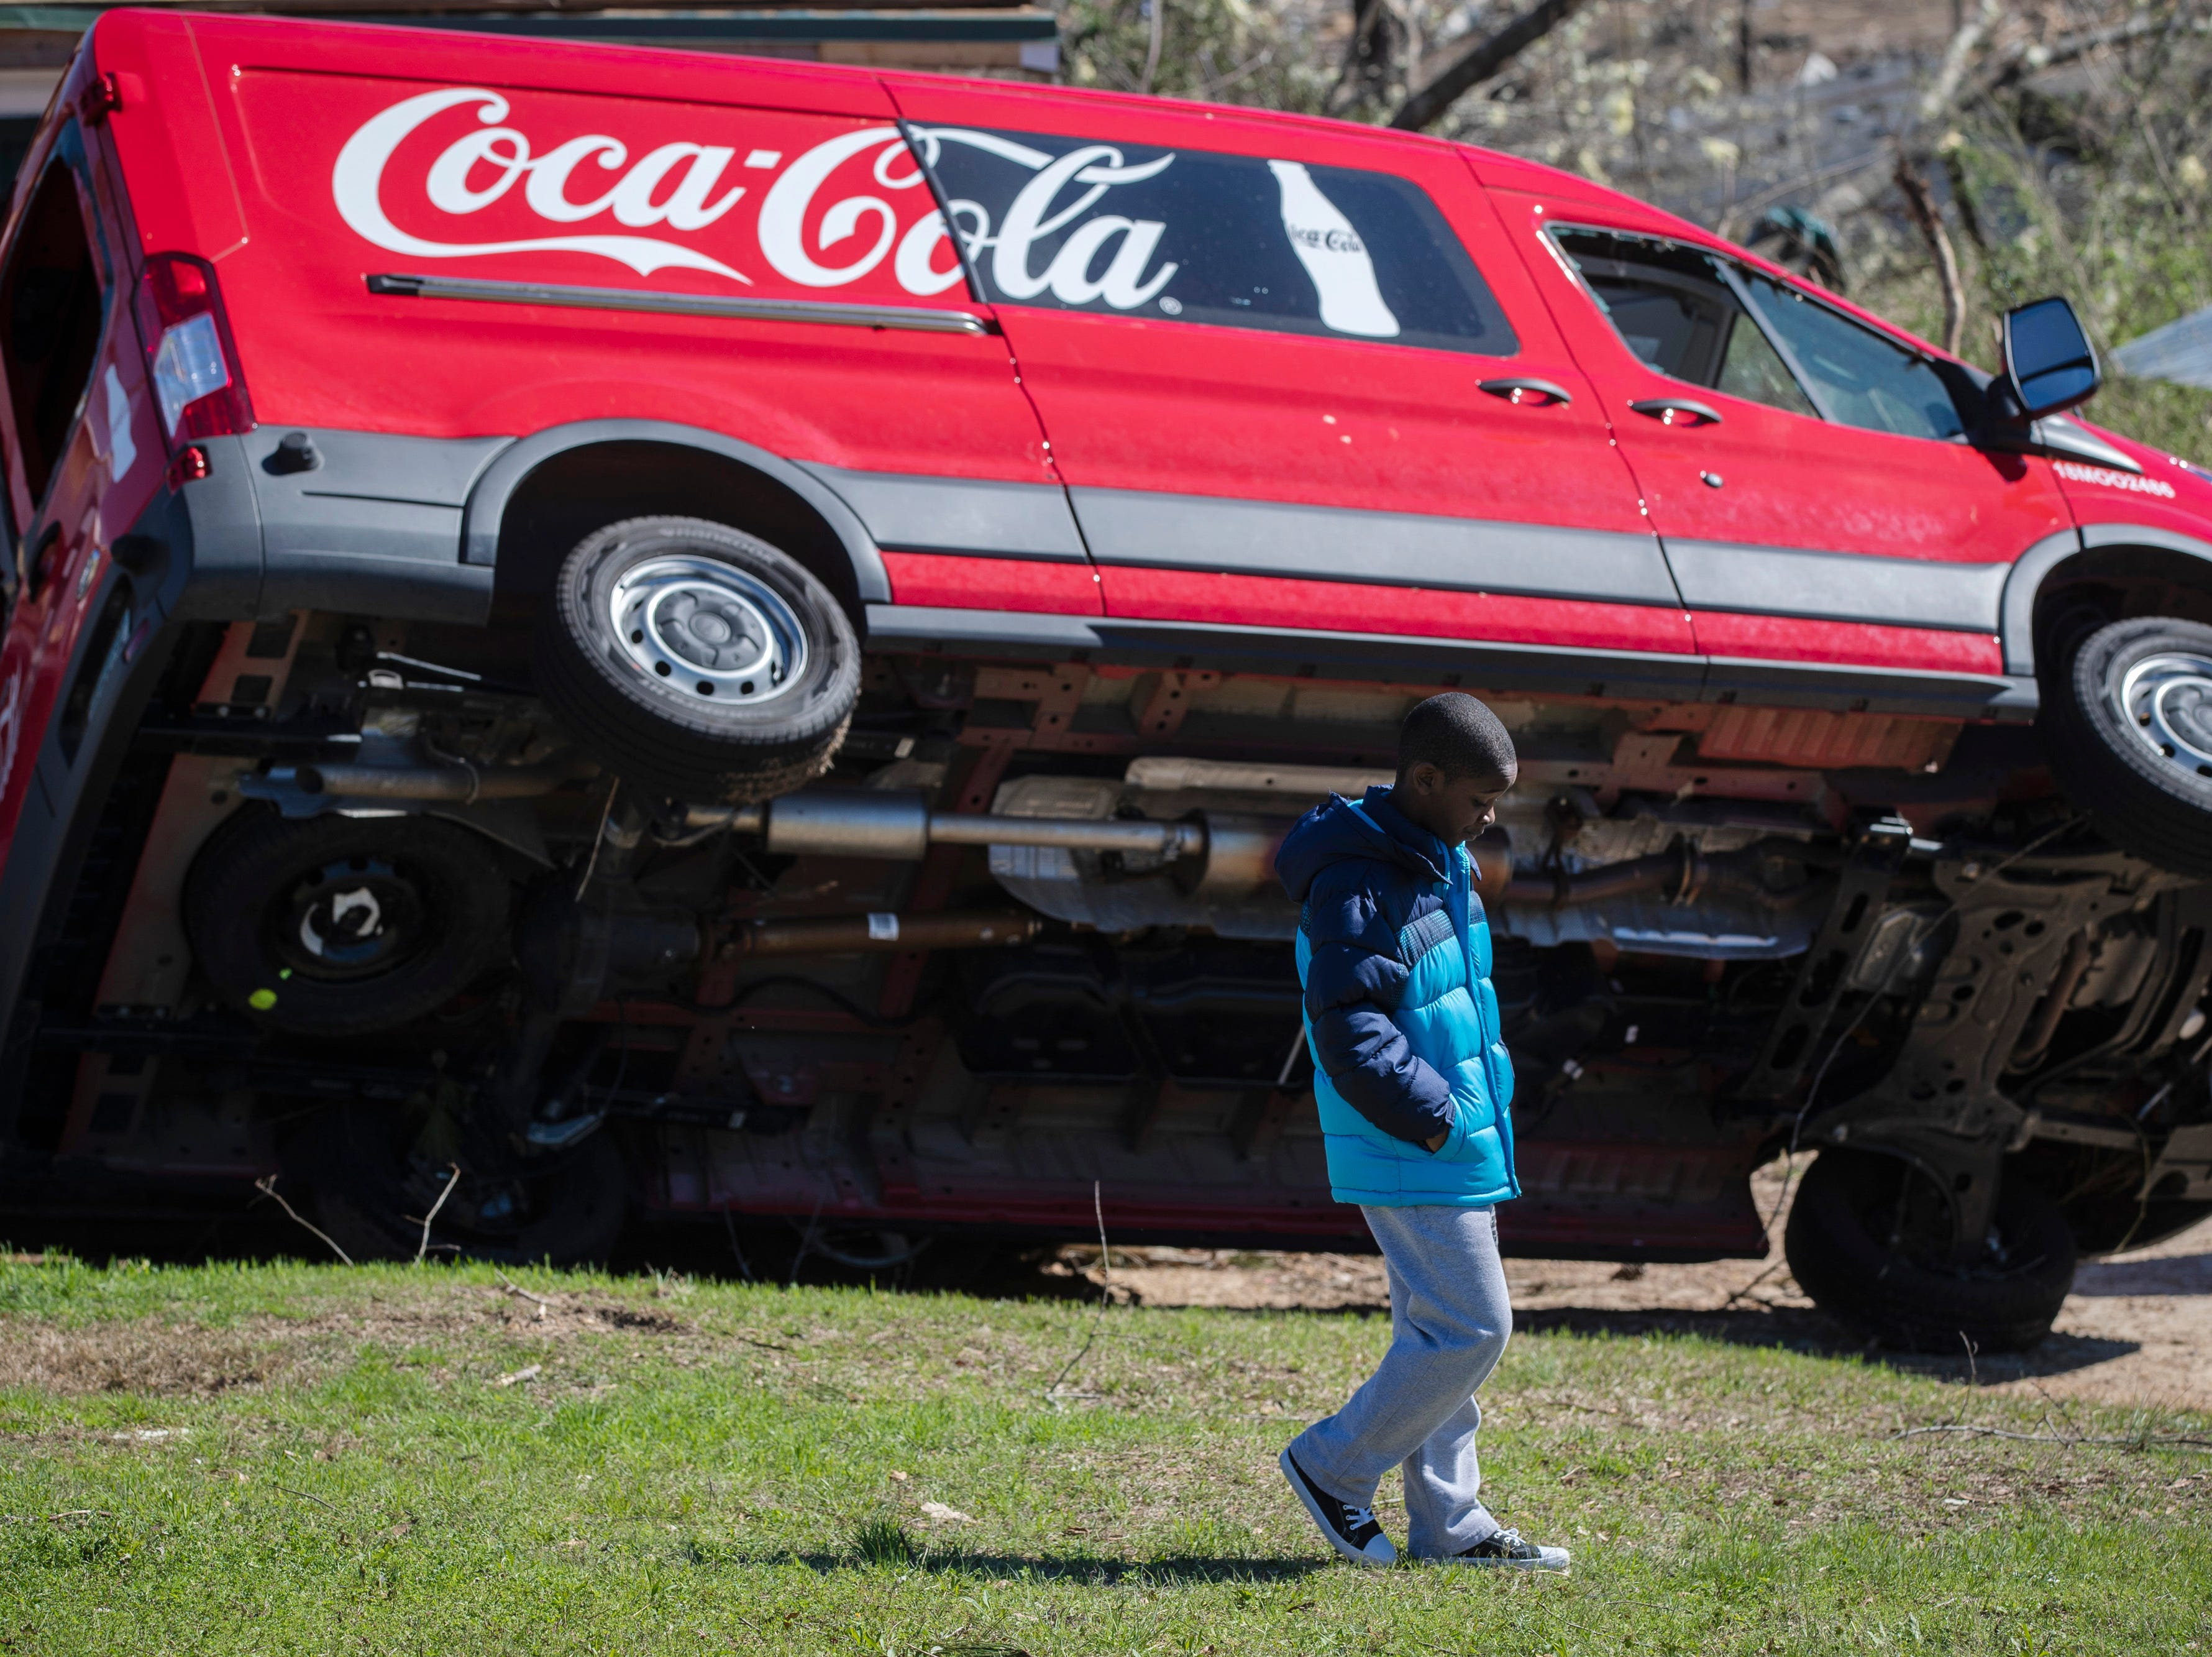 Cameron Baker, 11, walks through his front yard near his father's work truck in Beauregard, Ala. on March 6, 2019.